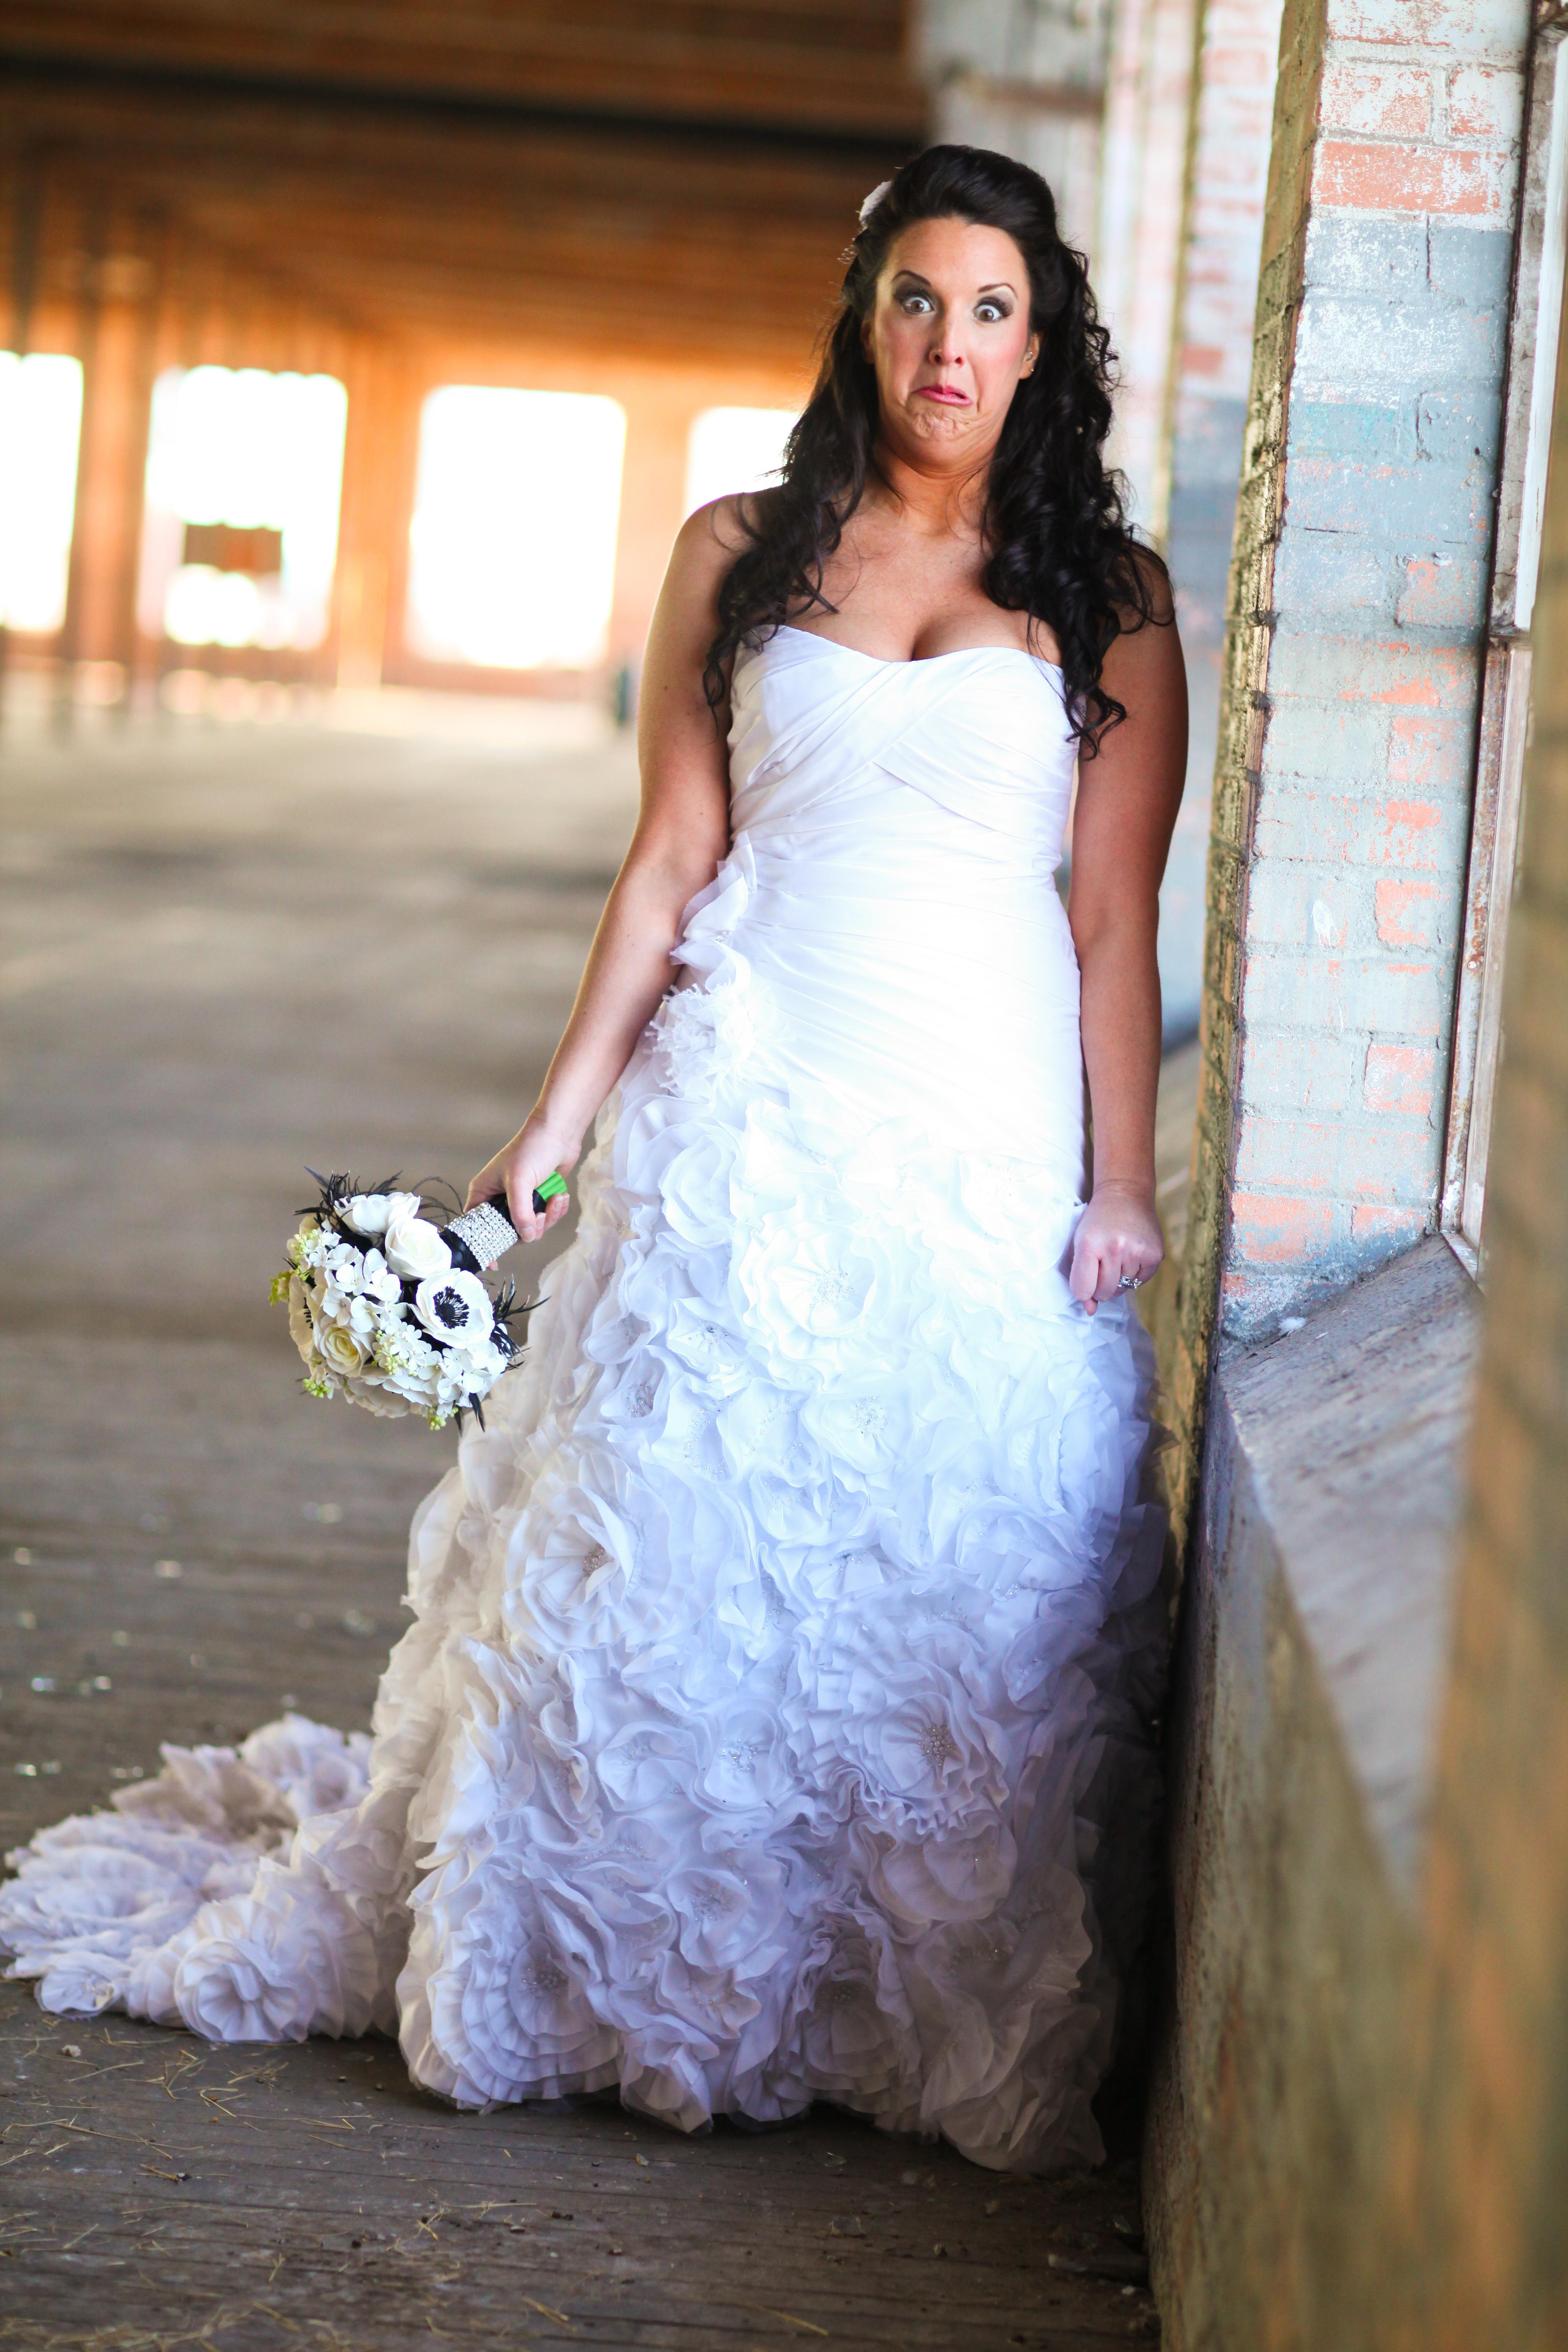 Wedding Dresses, Fashion, dress, Portraits, Bridal, Rock the dress, Thatcher photography, Mckinney cotton mill